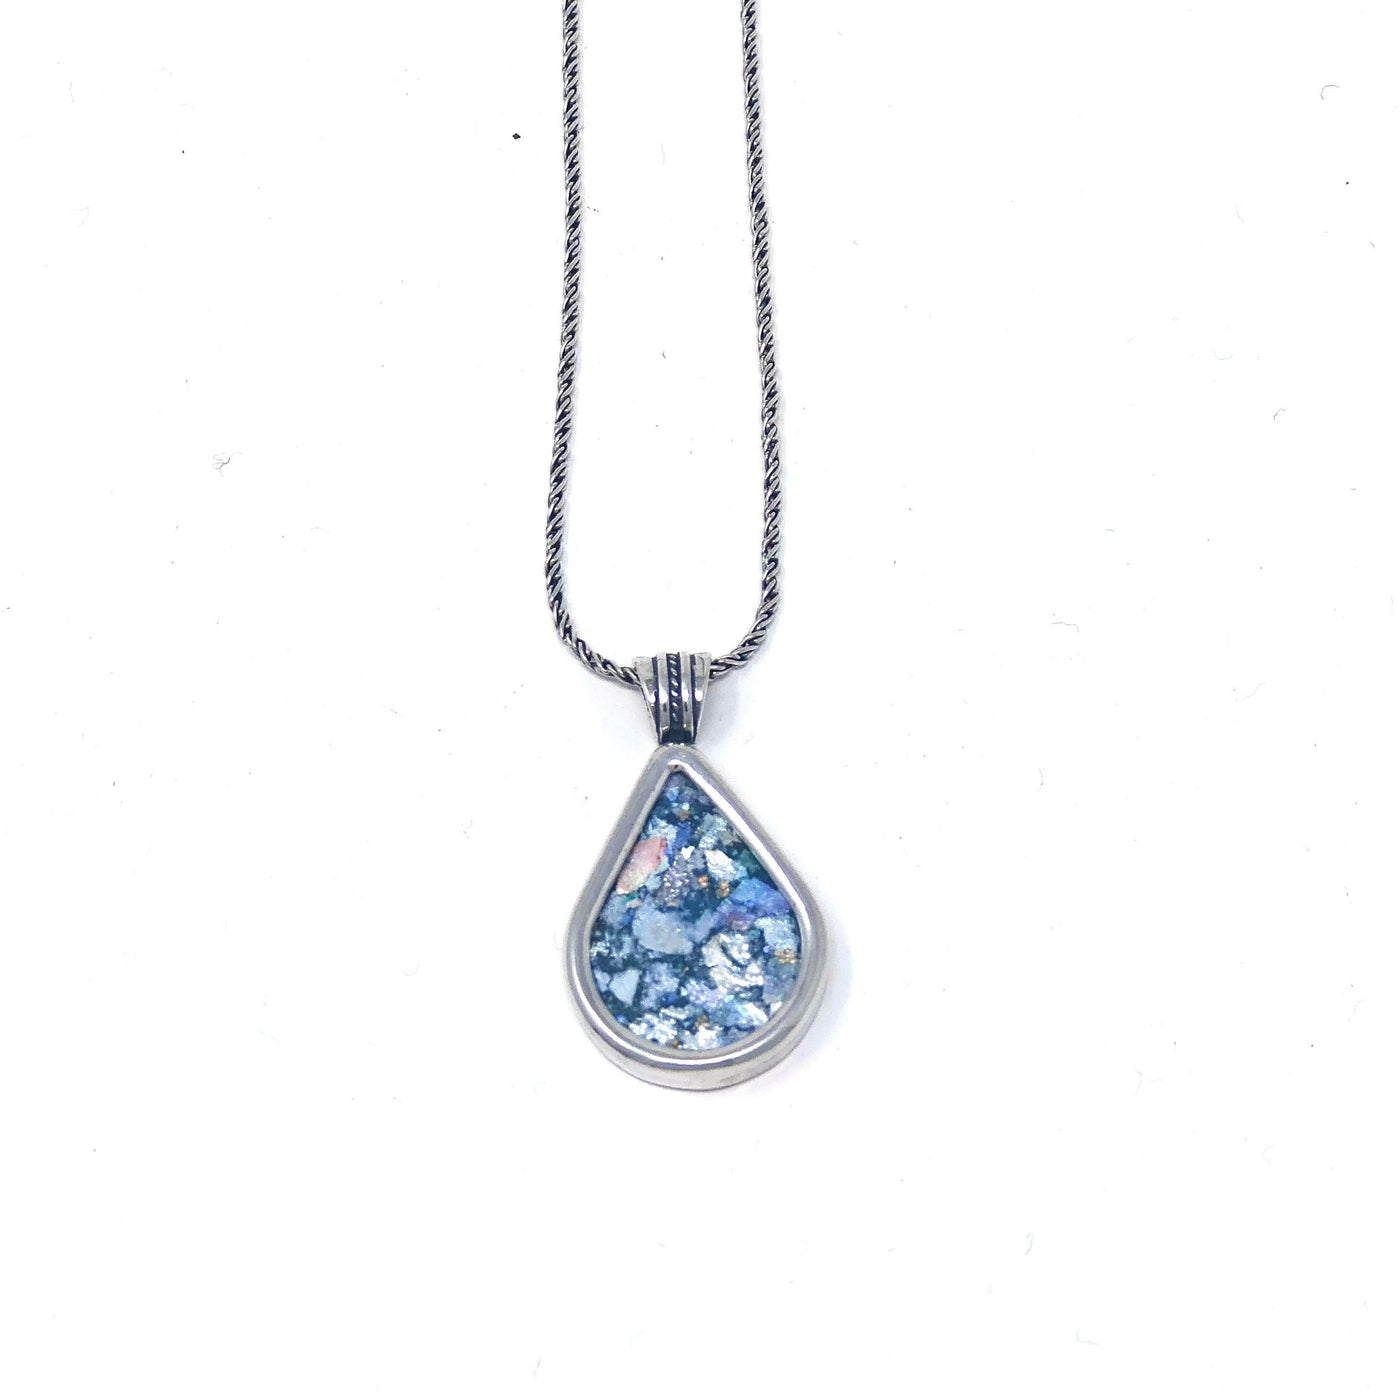 DSB P660 ROMAN TEARDROP NECKLACE